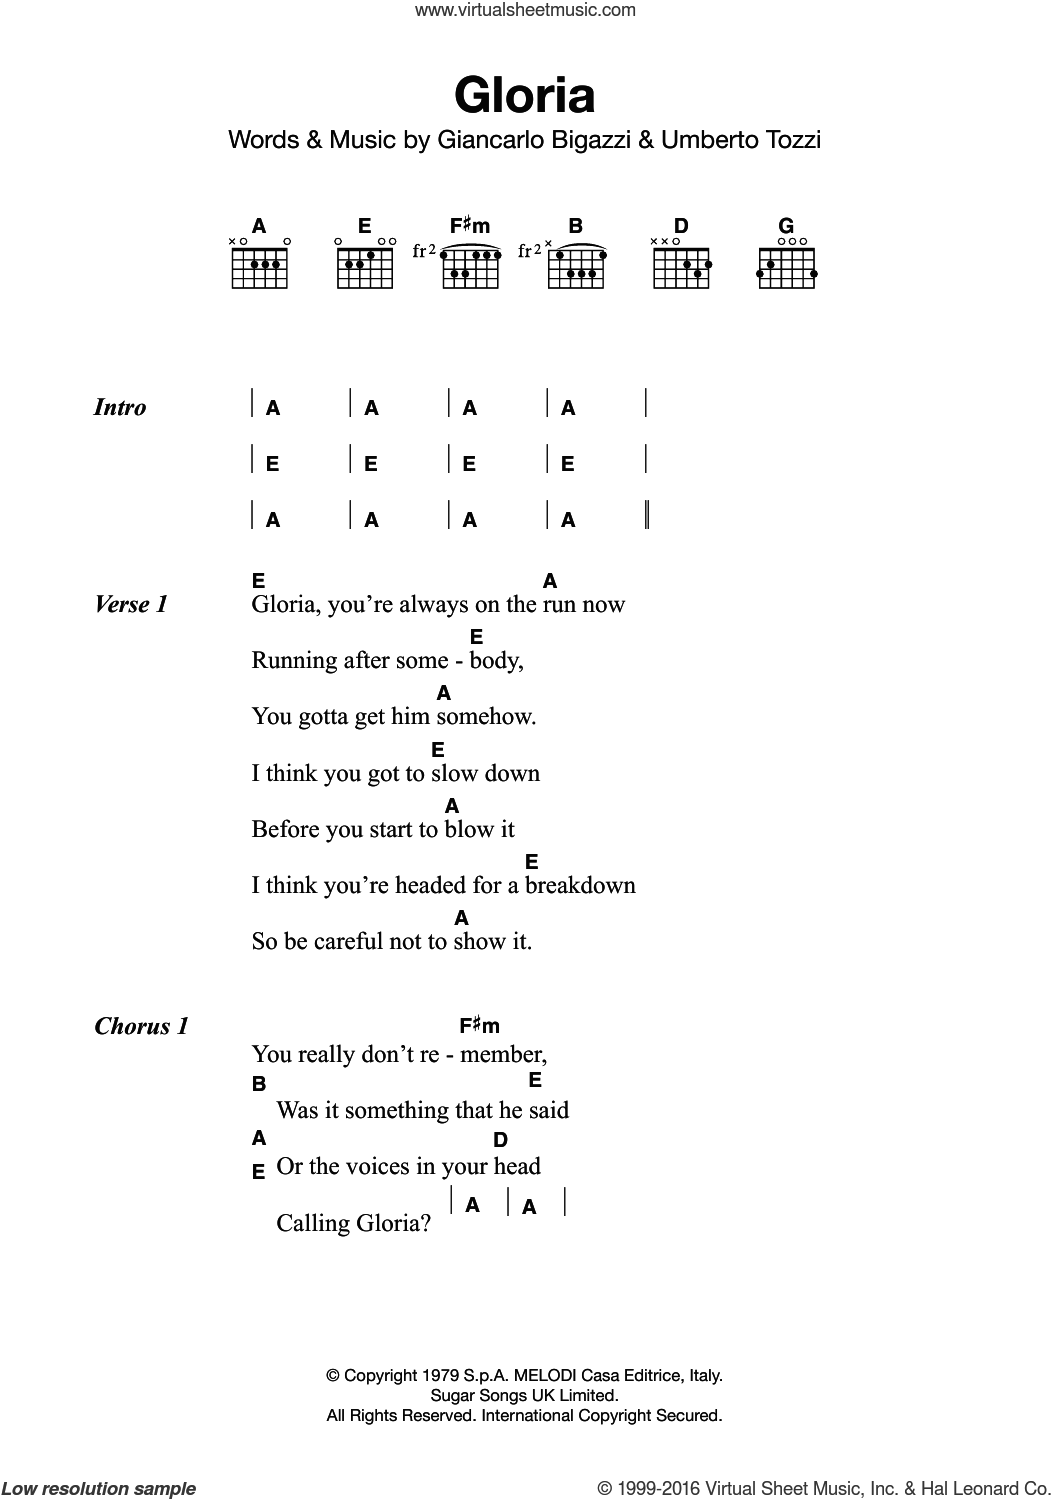 Branigan Gloria Sheet Music For Guitar Chords Pdf